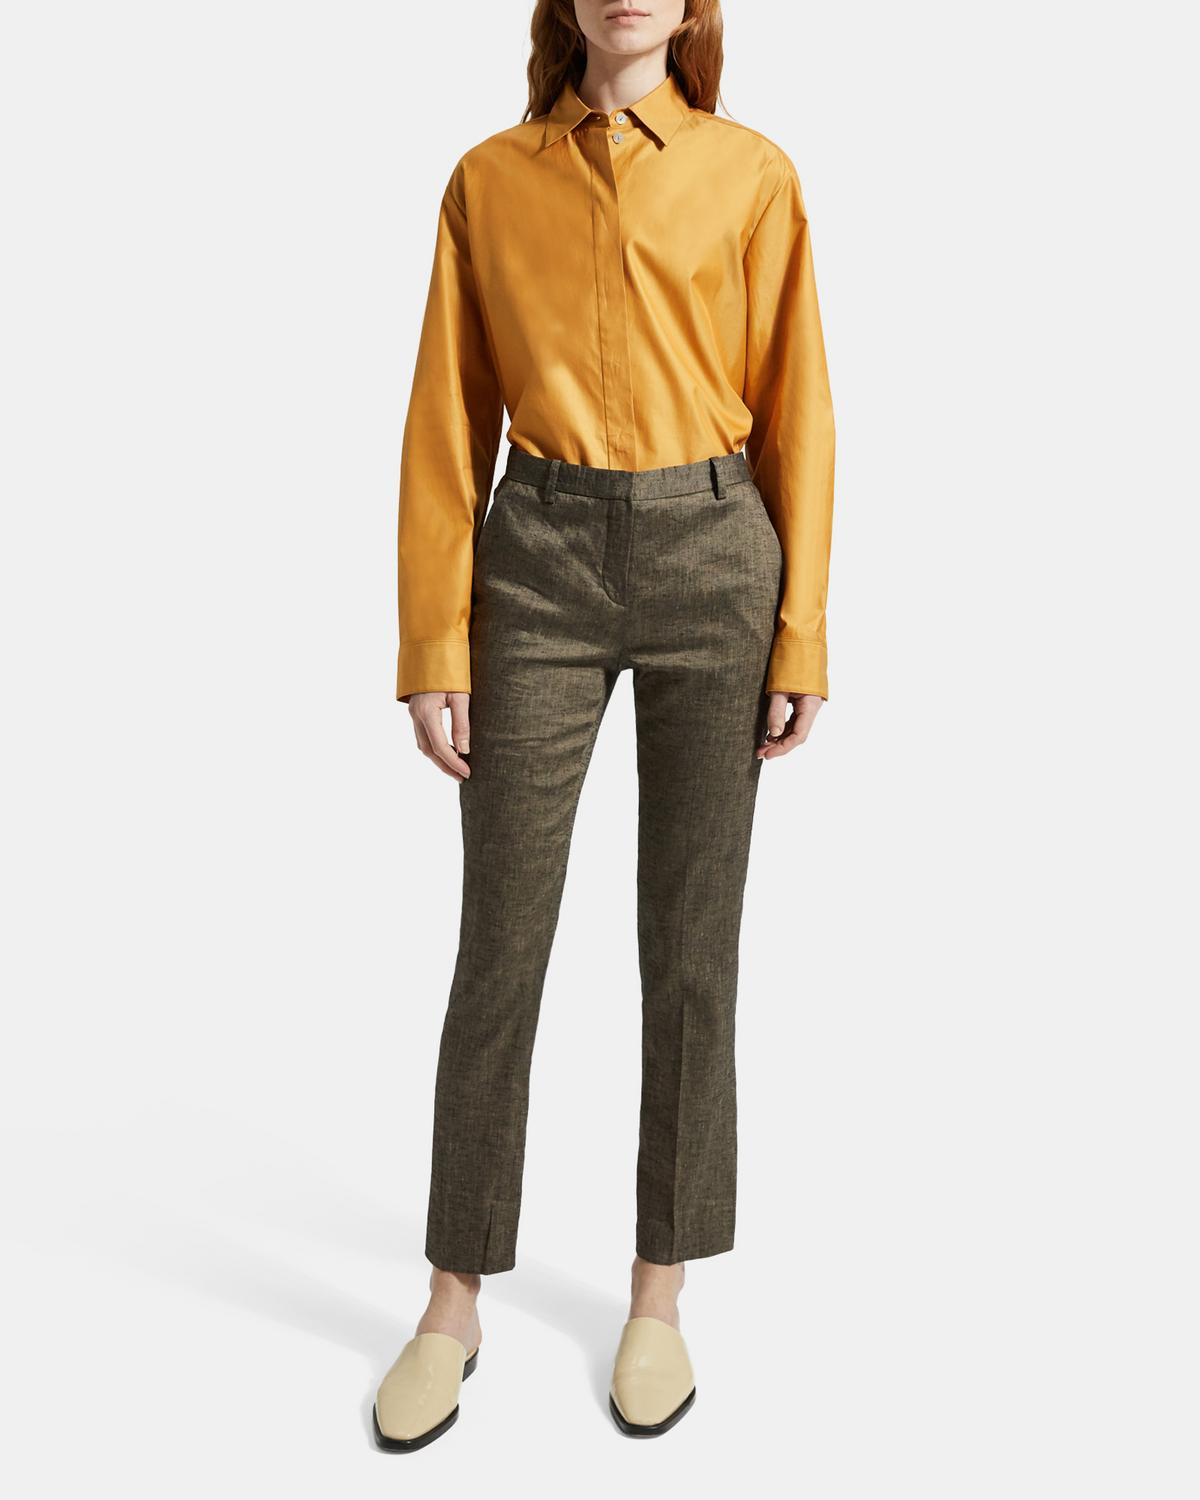 Treeca Full Length Pant in Textured Linen